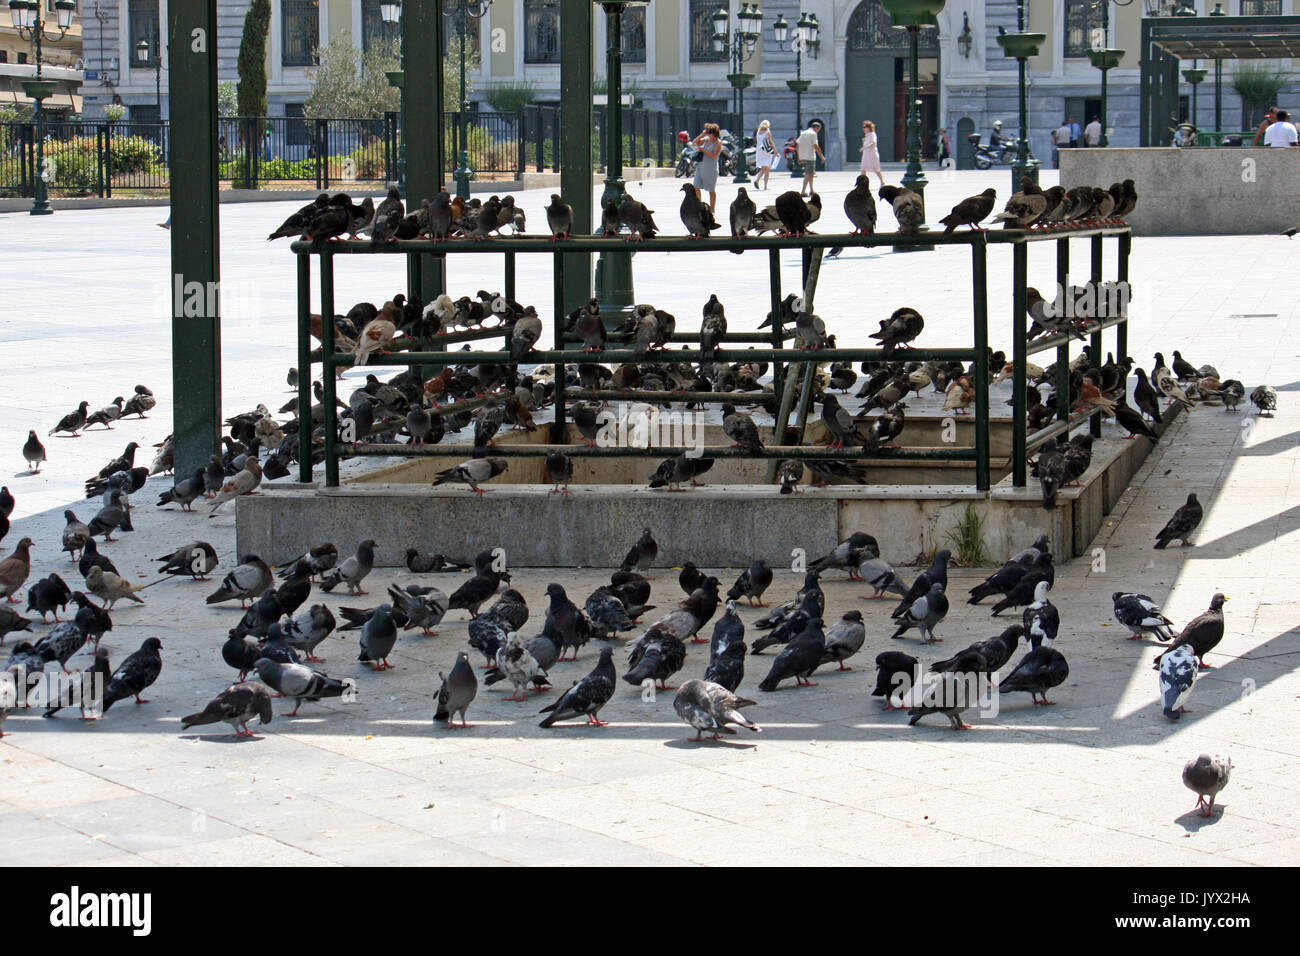 Pigeons flee from the scorching sun into the shade in Athens, Greece - Stock Image